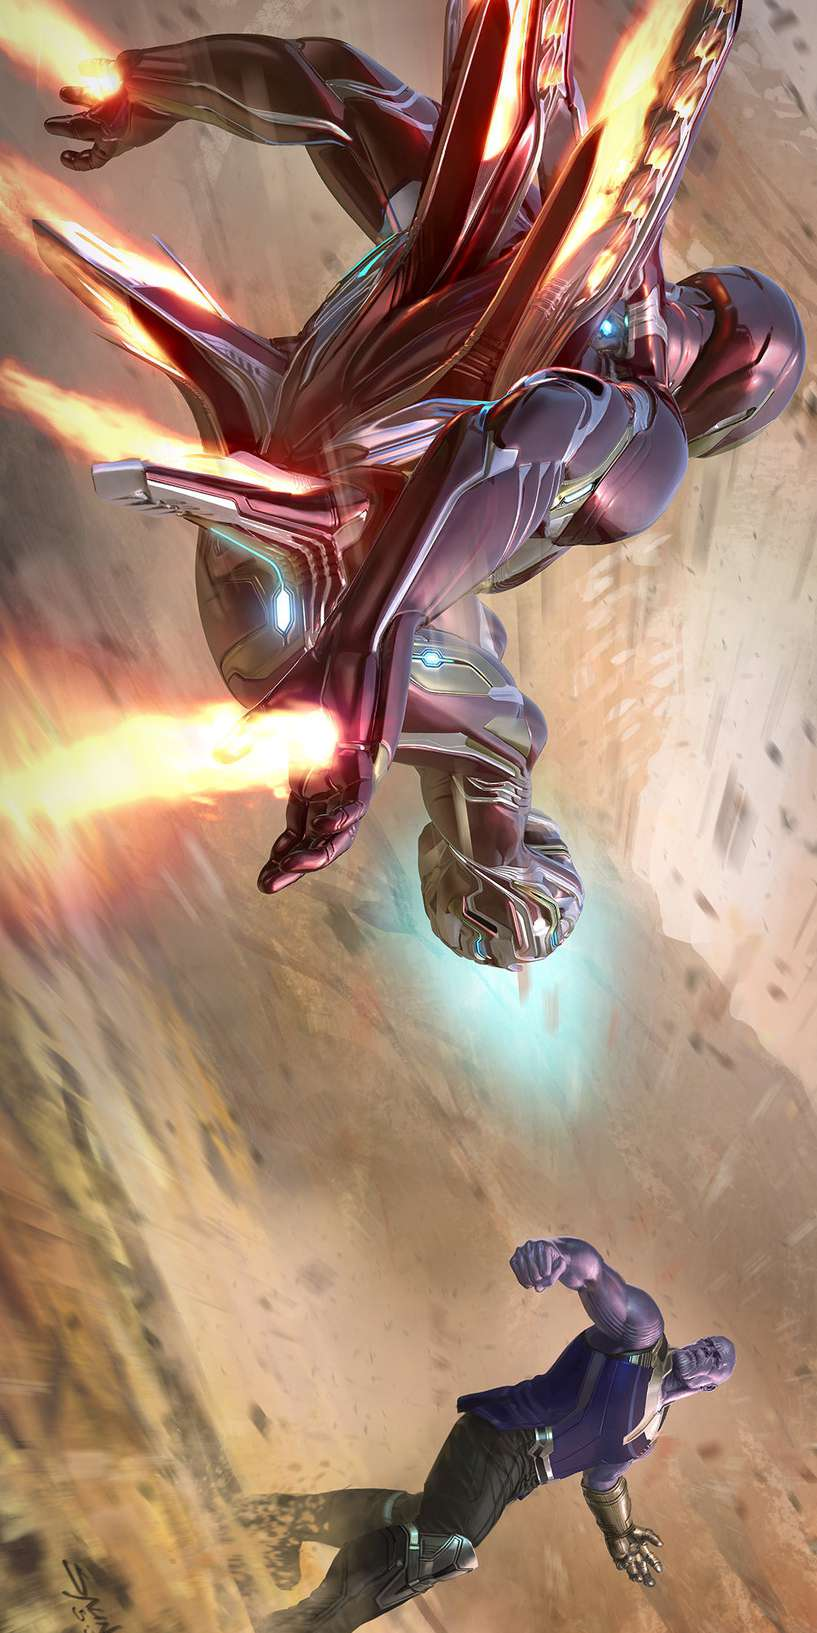 Iron Man Fighting Thanos Iphone Wallpaper Iphone Wallpapers